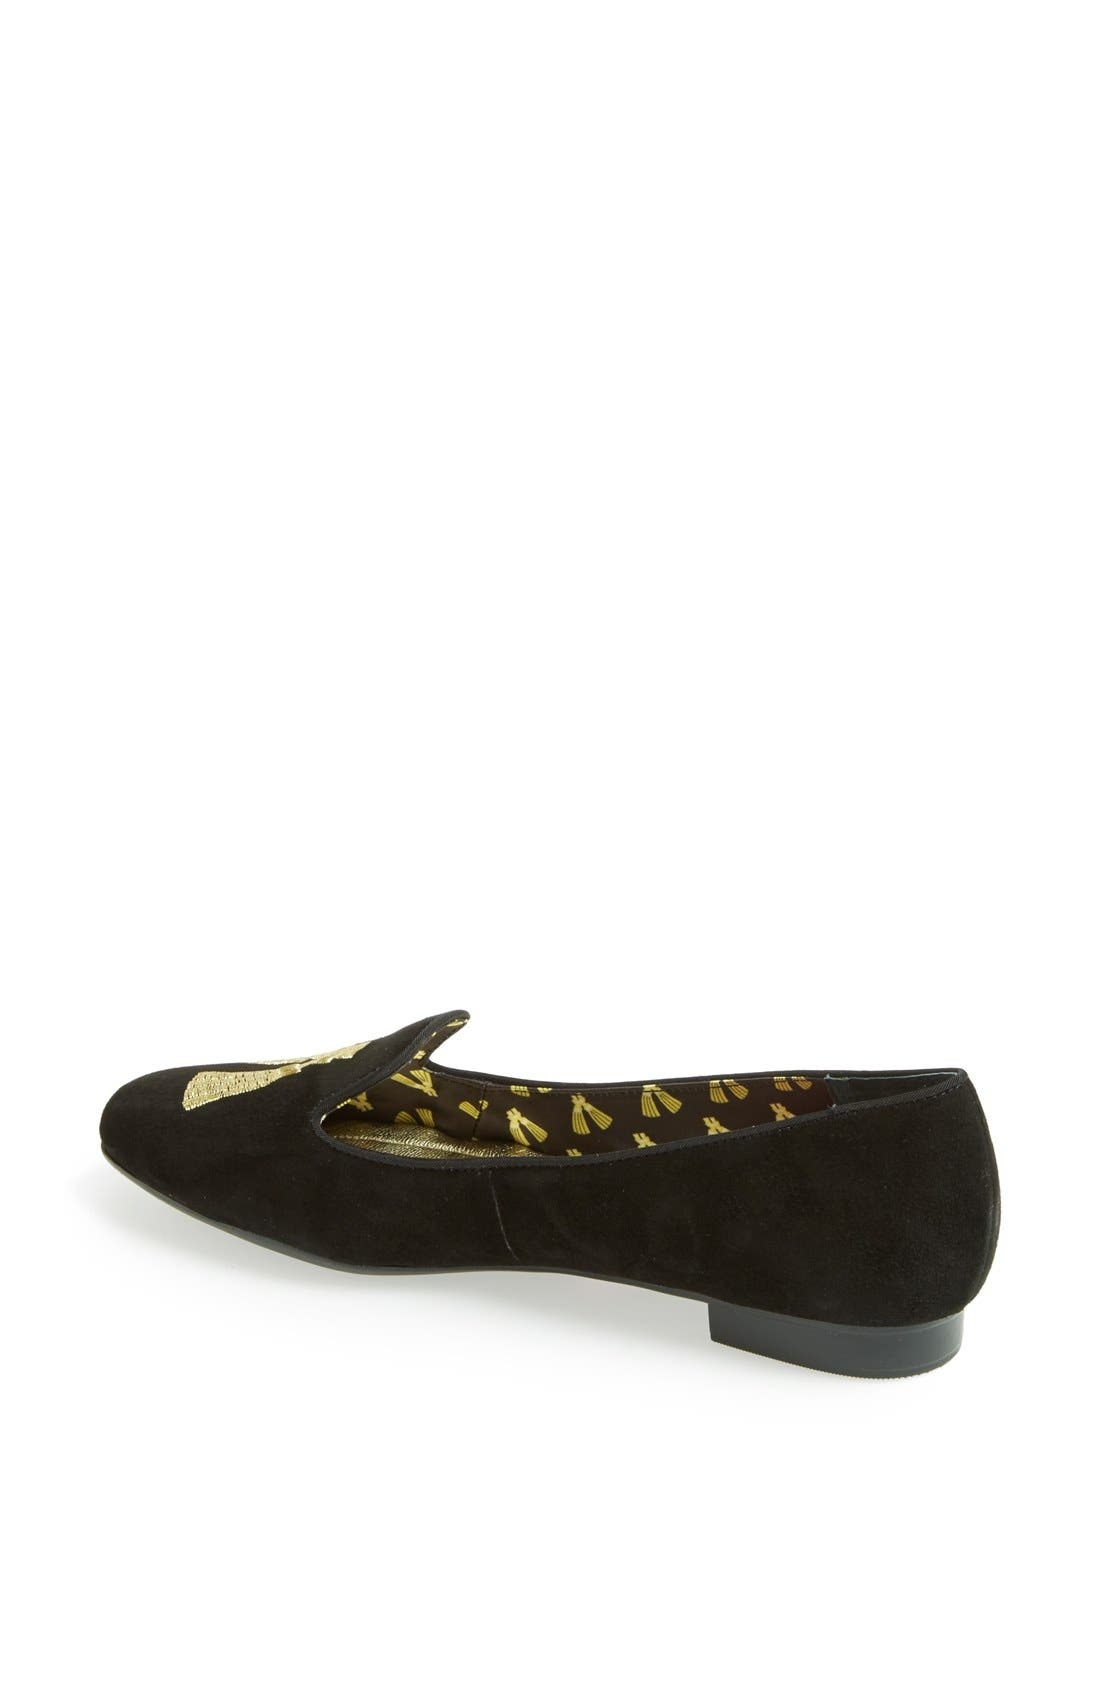 Alternate Image 2  - Isaac Mizrahi New York 'Kimil' Smoking Slipper